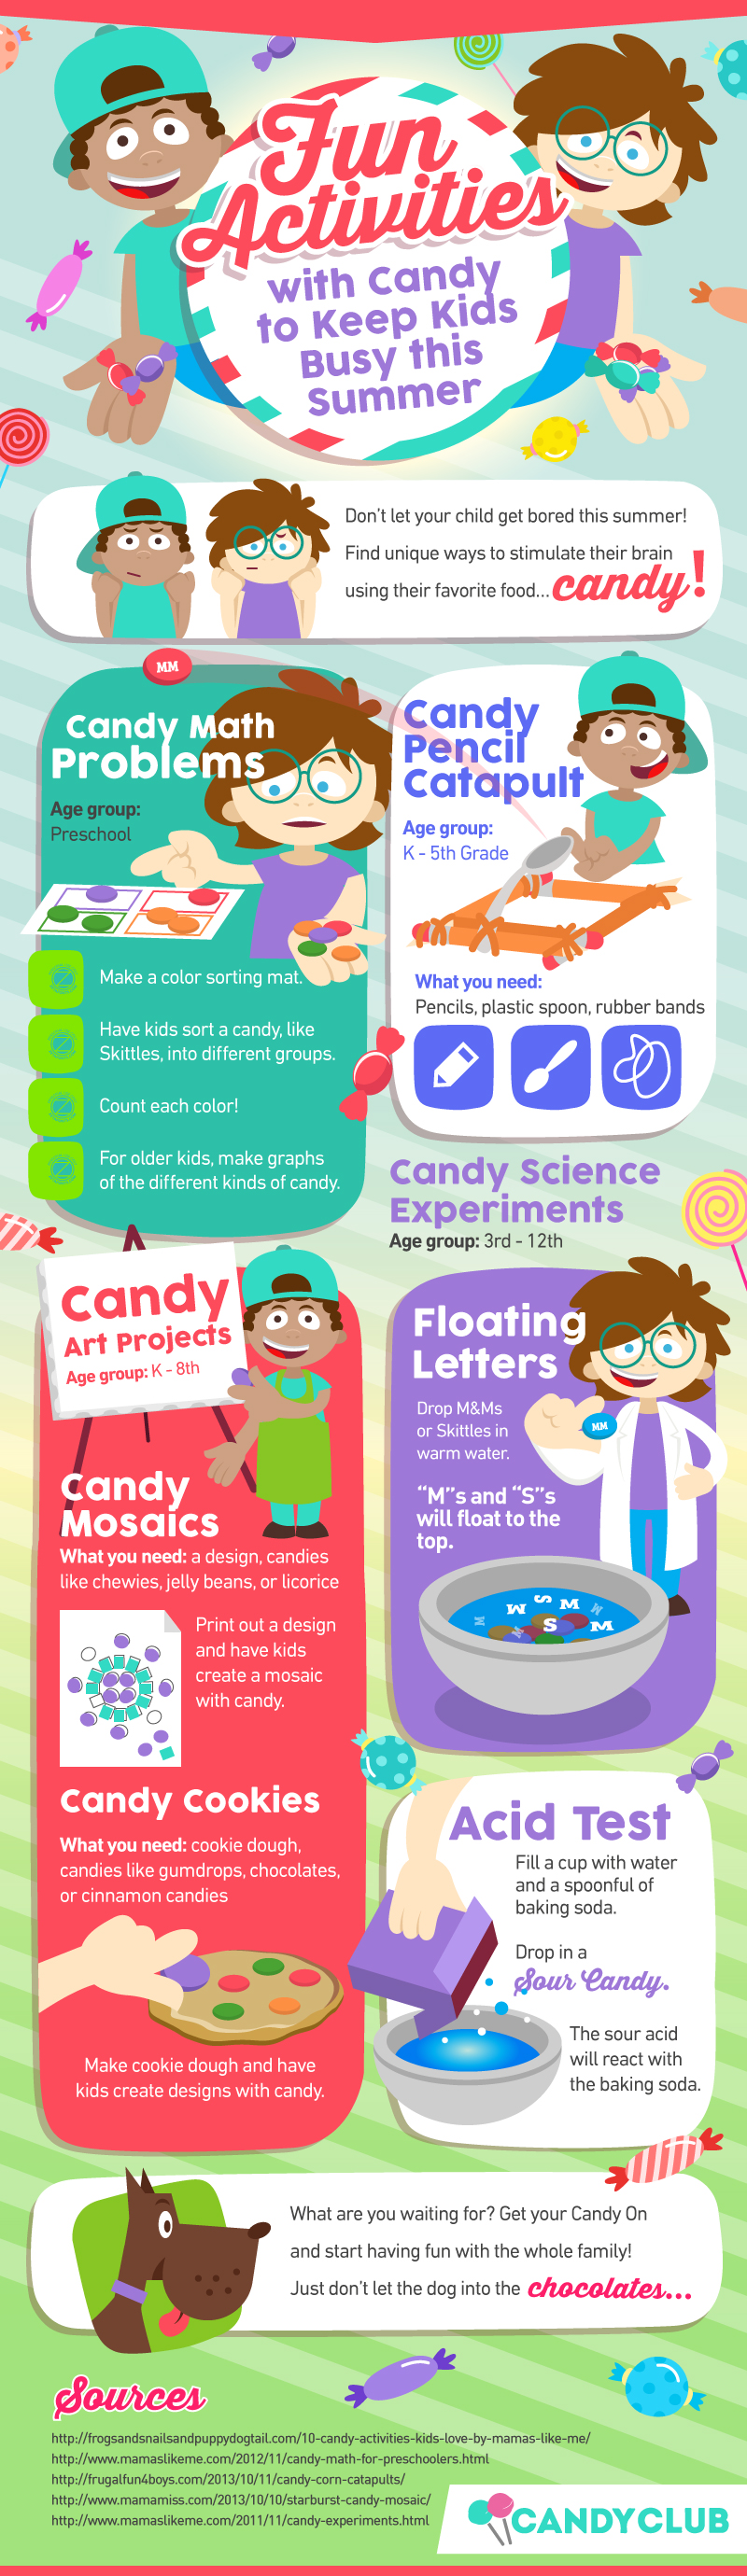 Infographic of candy activity ideas that will keep kids busy during the summer.